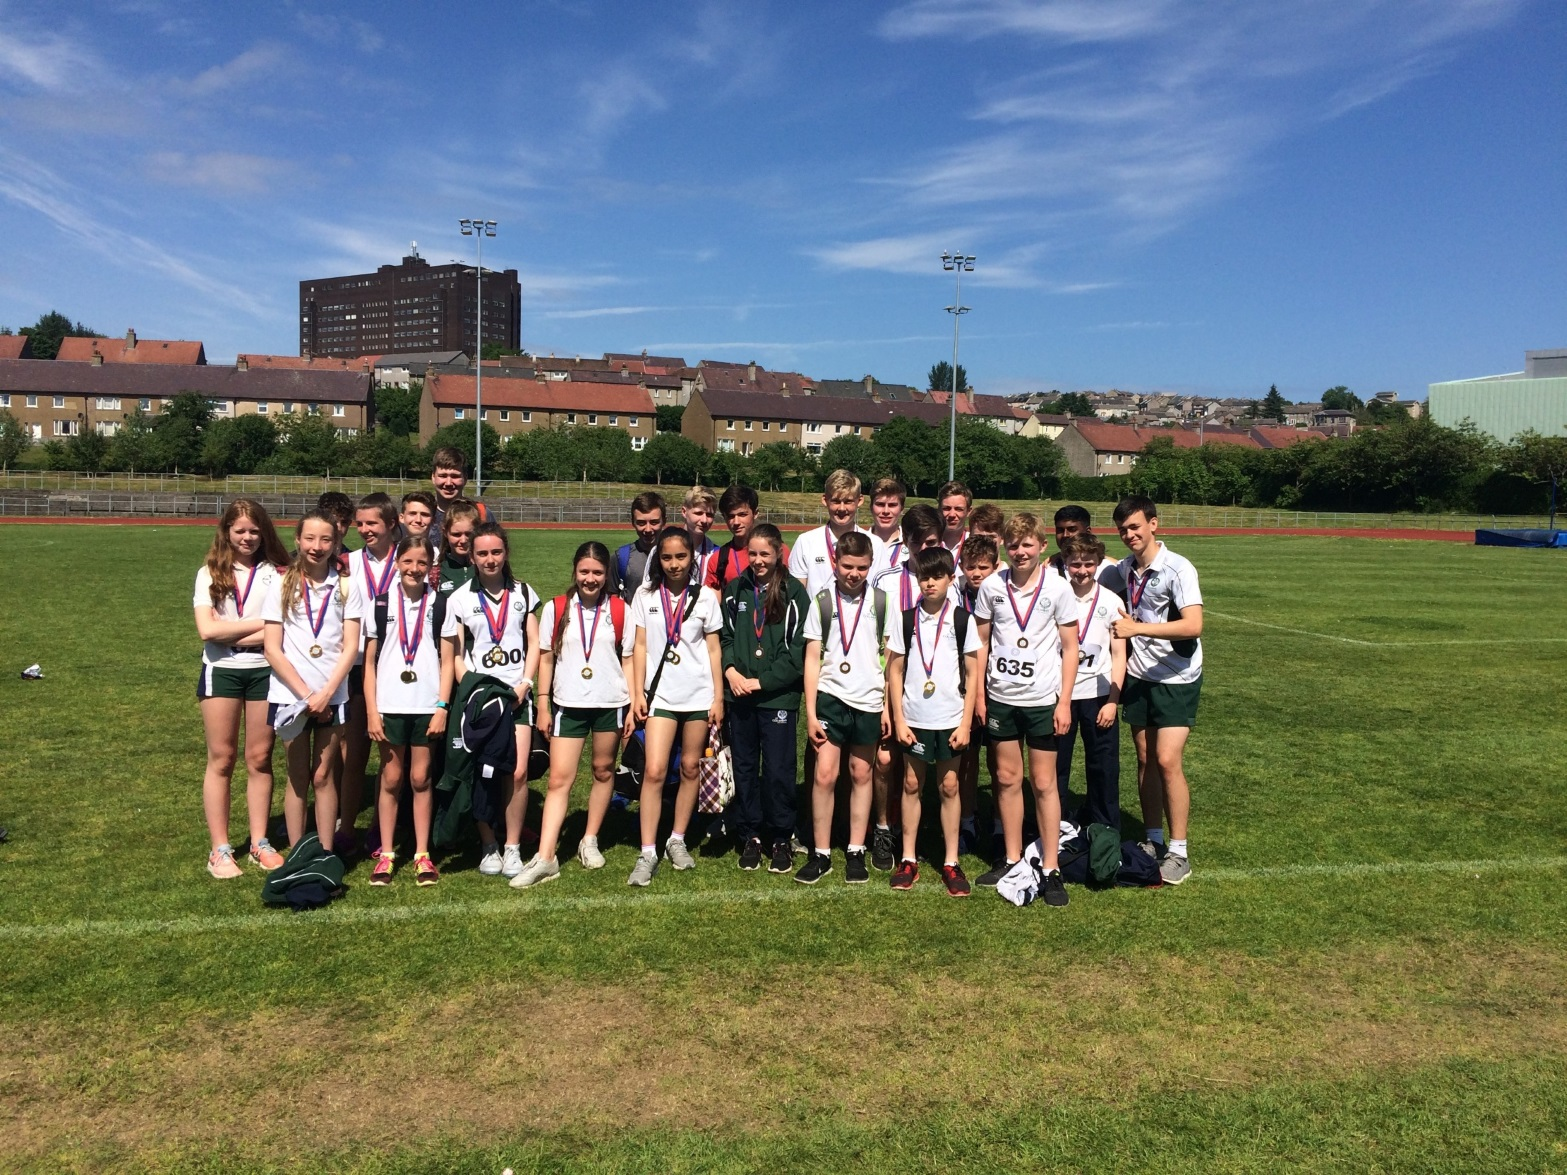 St Columba's School Kilmacolm Inverclyde District Sports